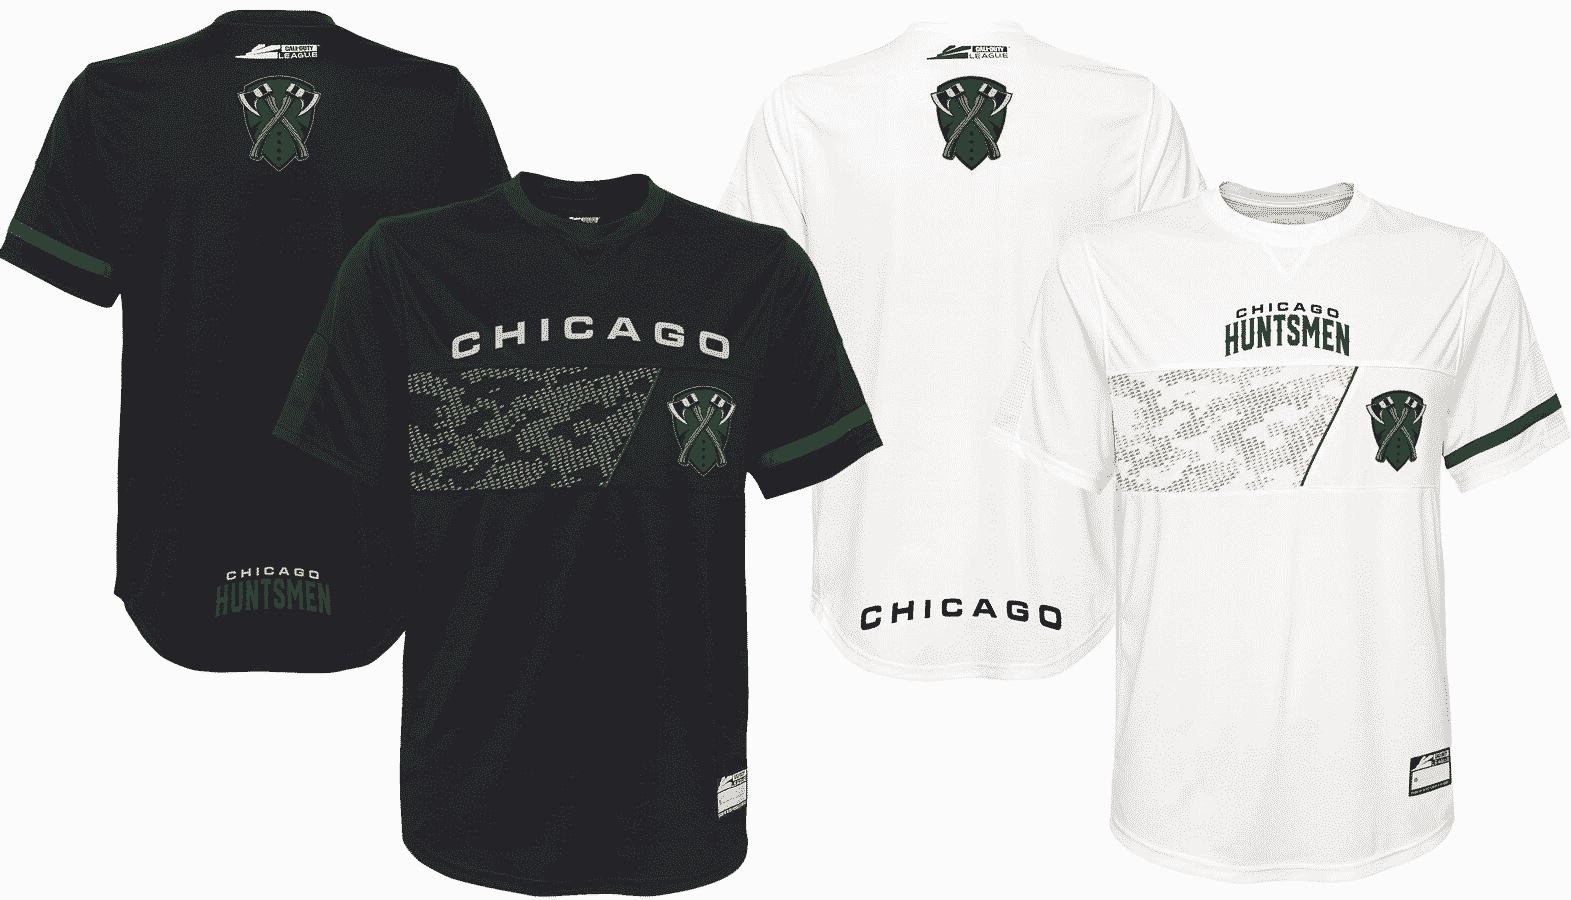 Chicago Huntsmen Jersey Call of Duty League 2020 Esports